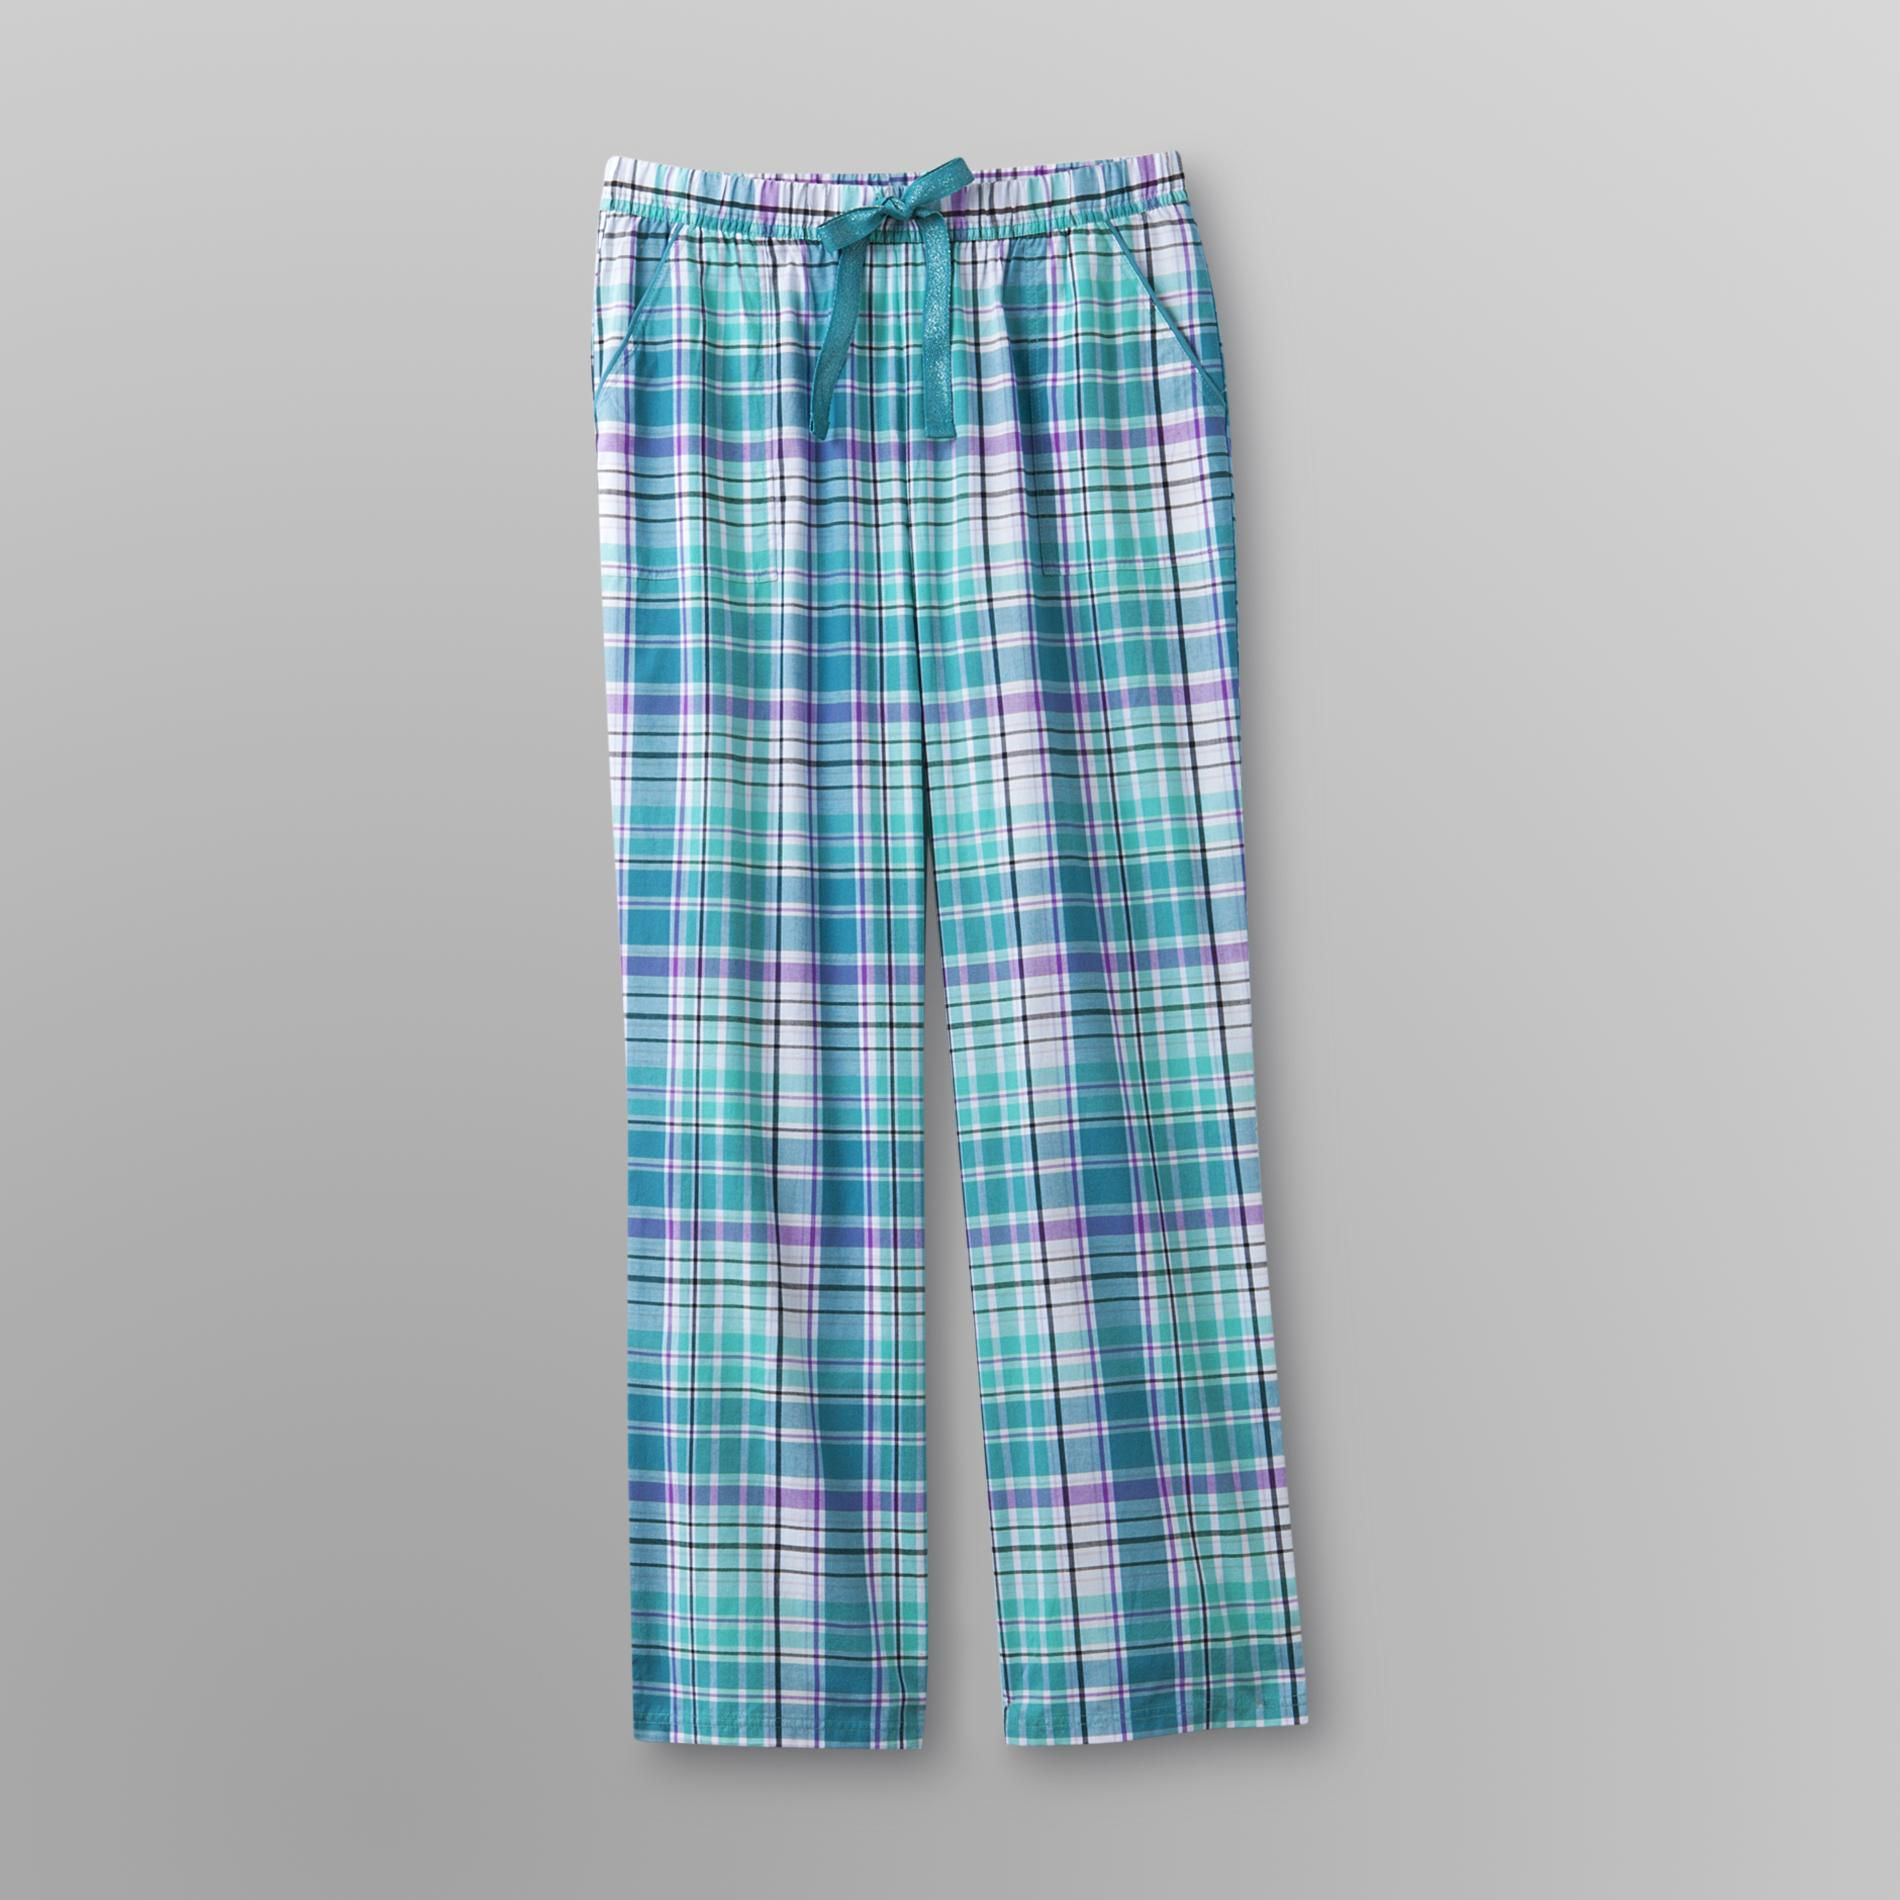 Women's Pajama Pants - Plaid